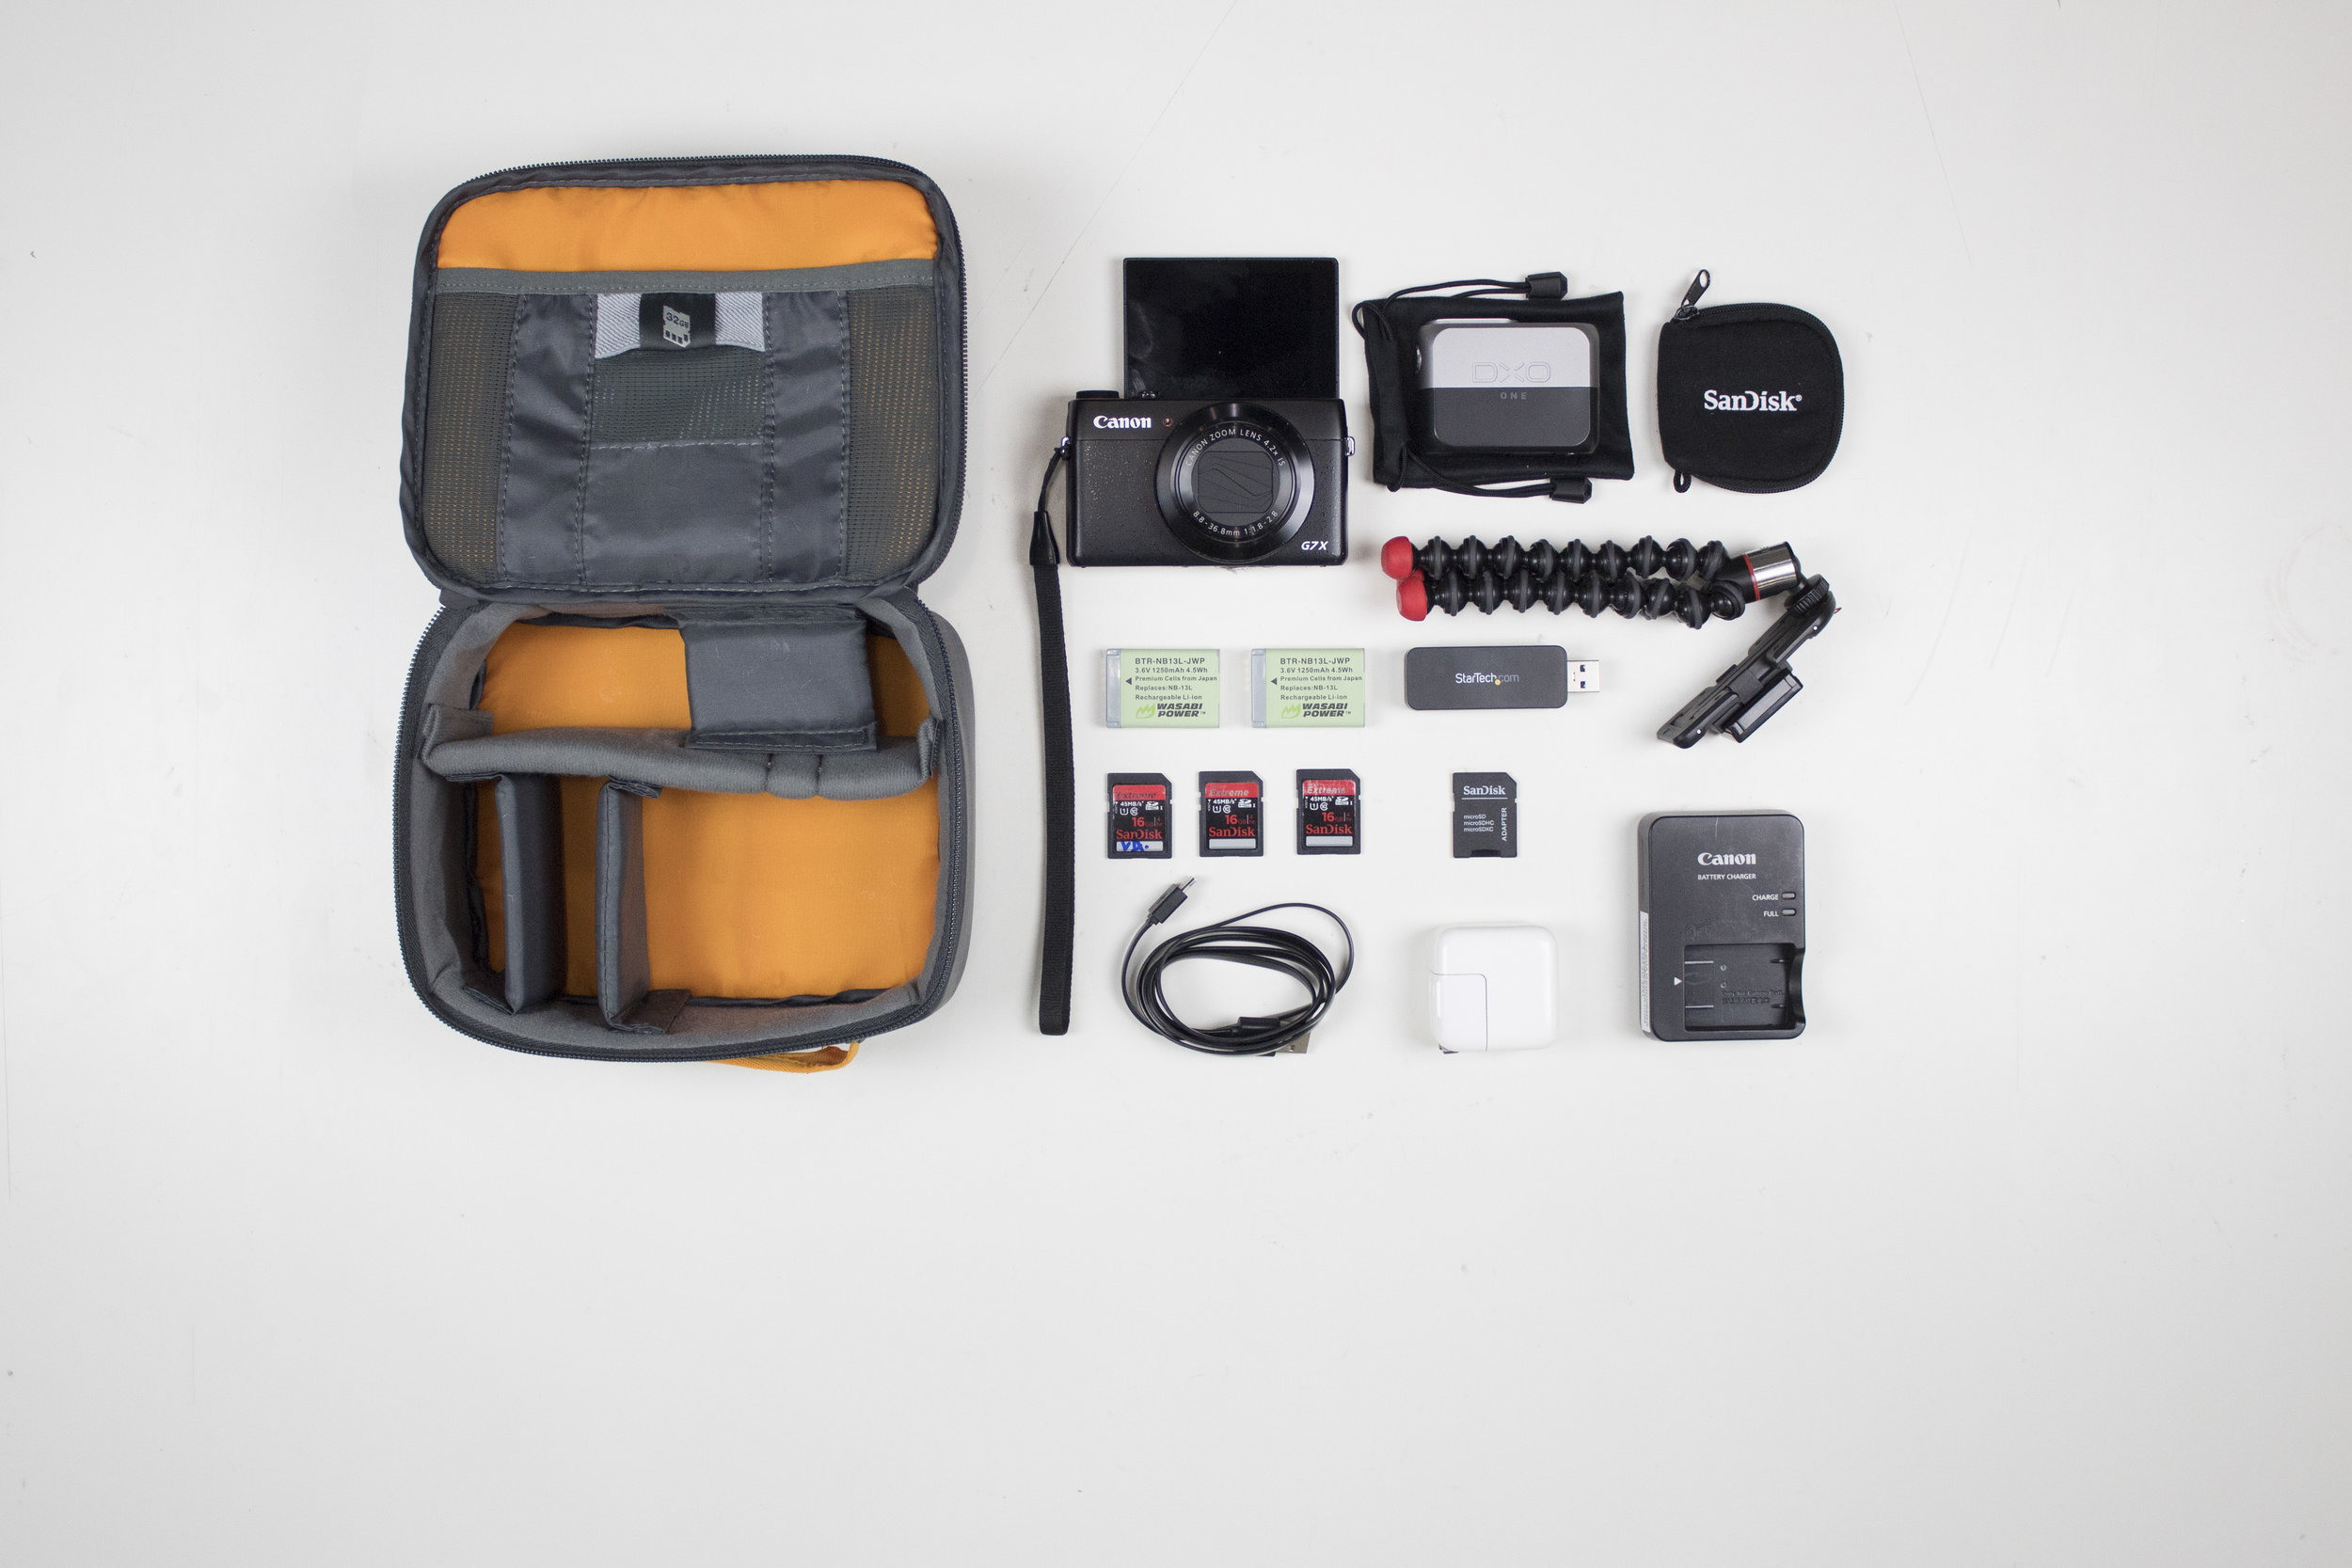 180201_Lowepro_GearUp_CameraBox_3.jpg